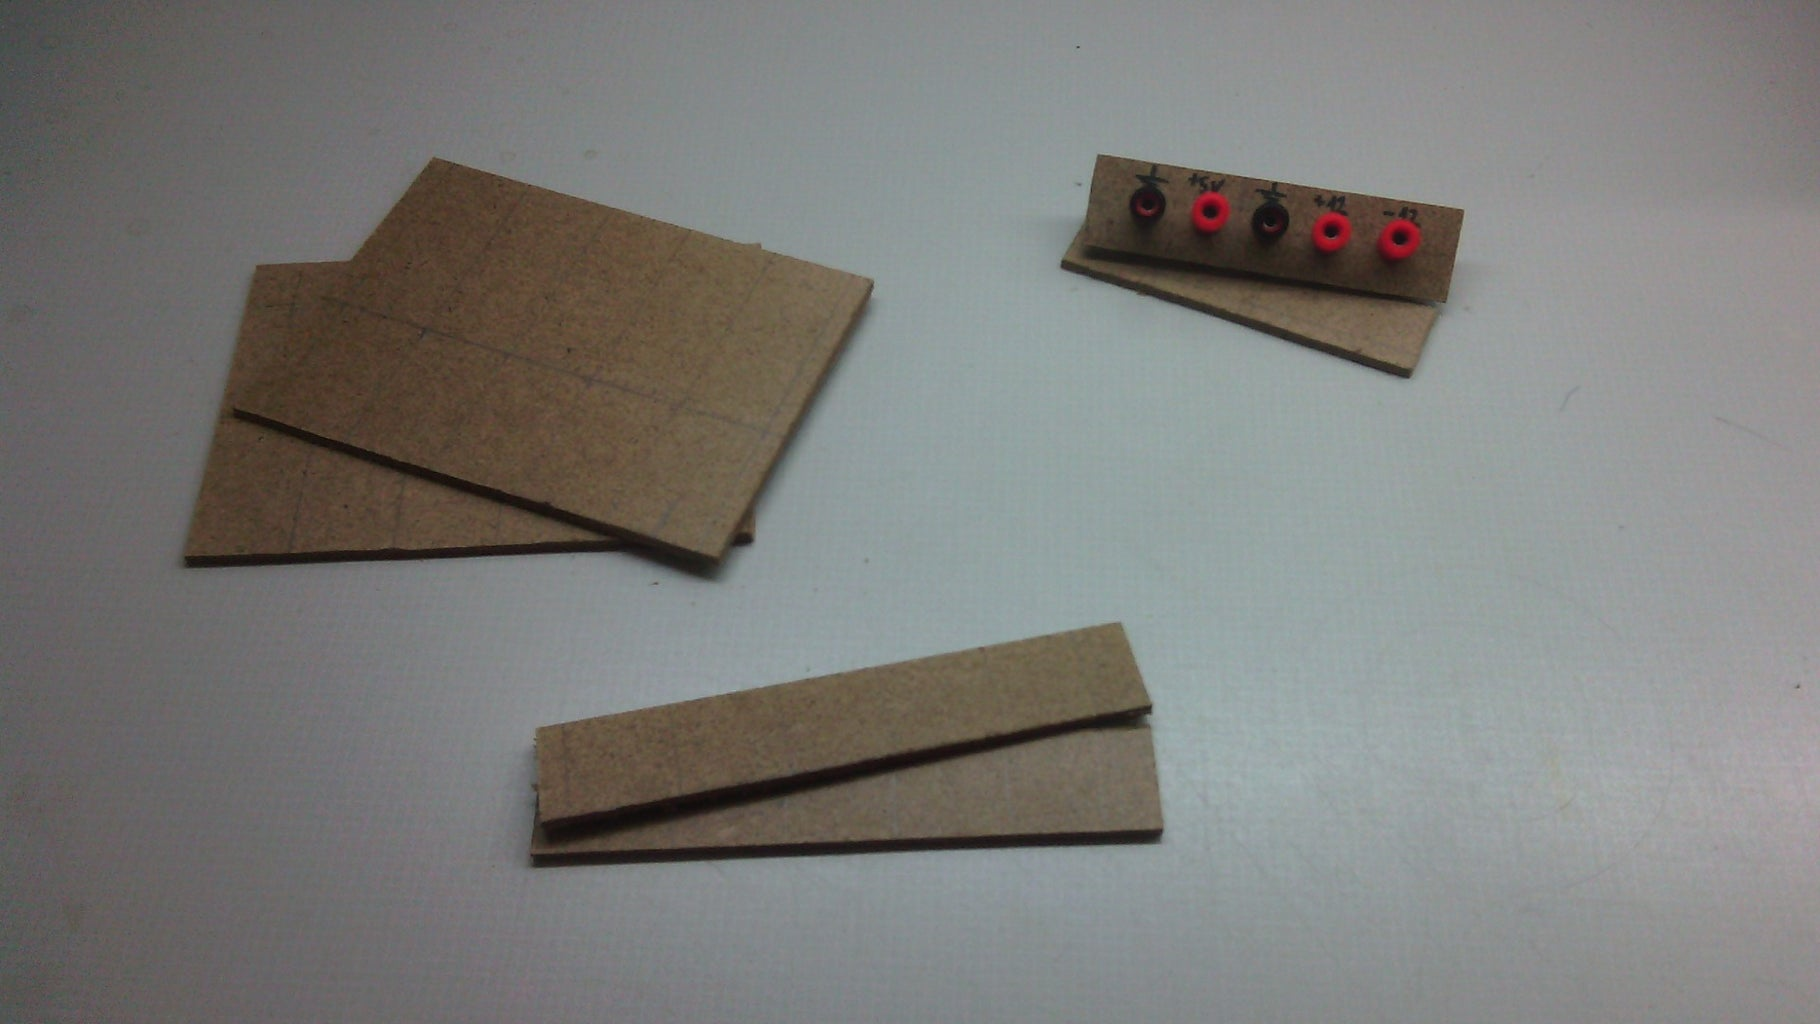 Cutted Parts for Box